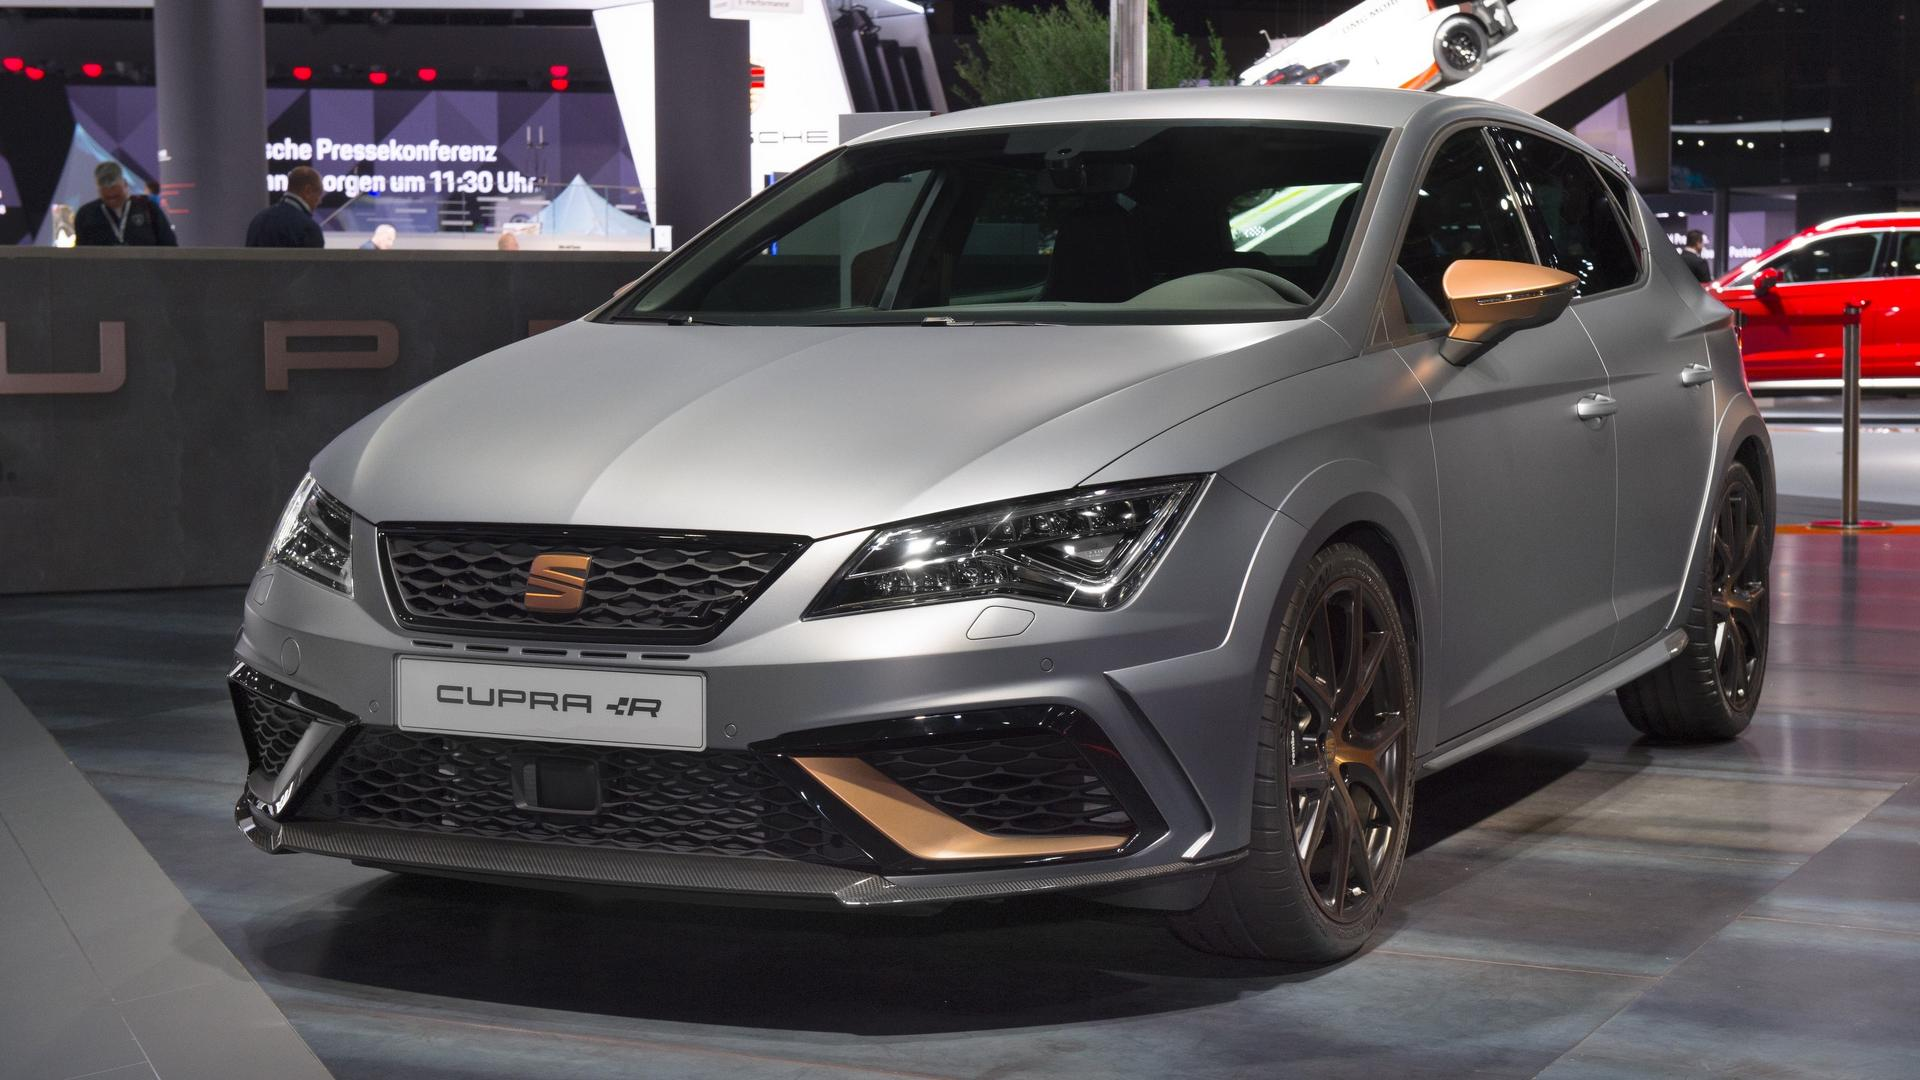 la seat leon cupra r en images au salon de francfort. Black Bedroom Furniture Sets. Home Design Ideas